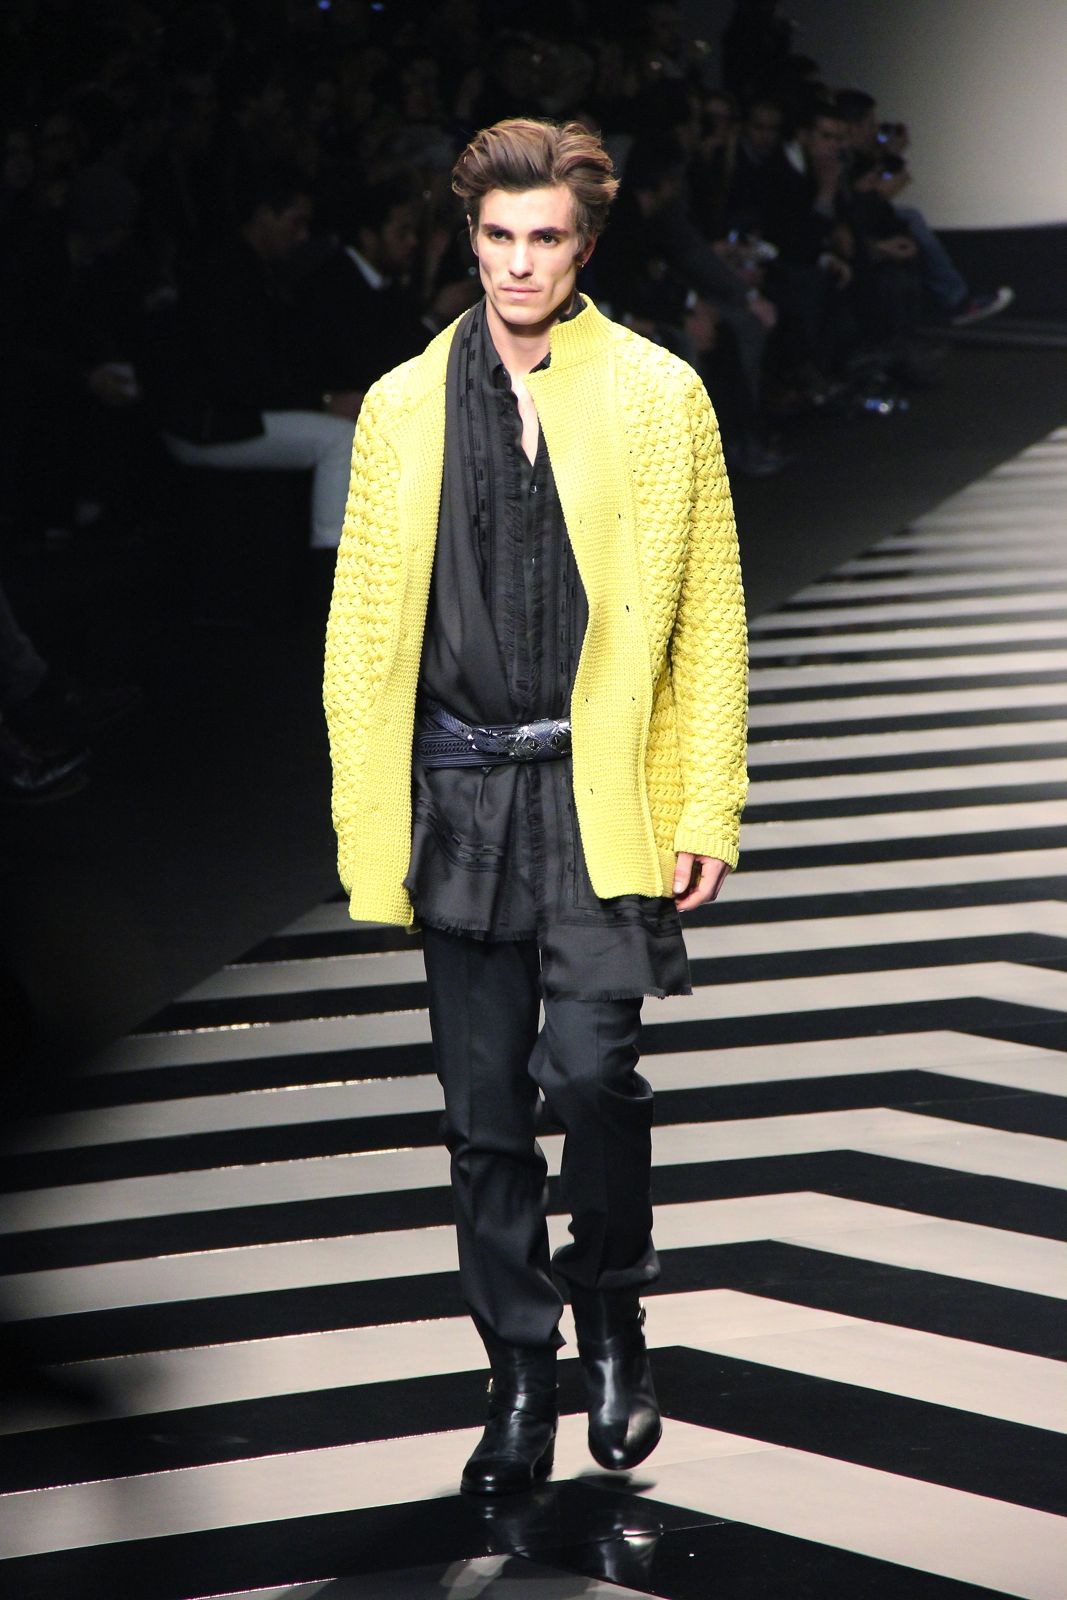 Roberto Cavalli Fall Winter 2012-13 Men Milano Fashion Week